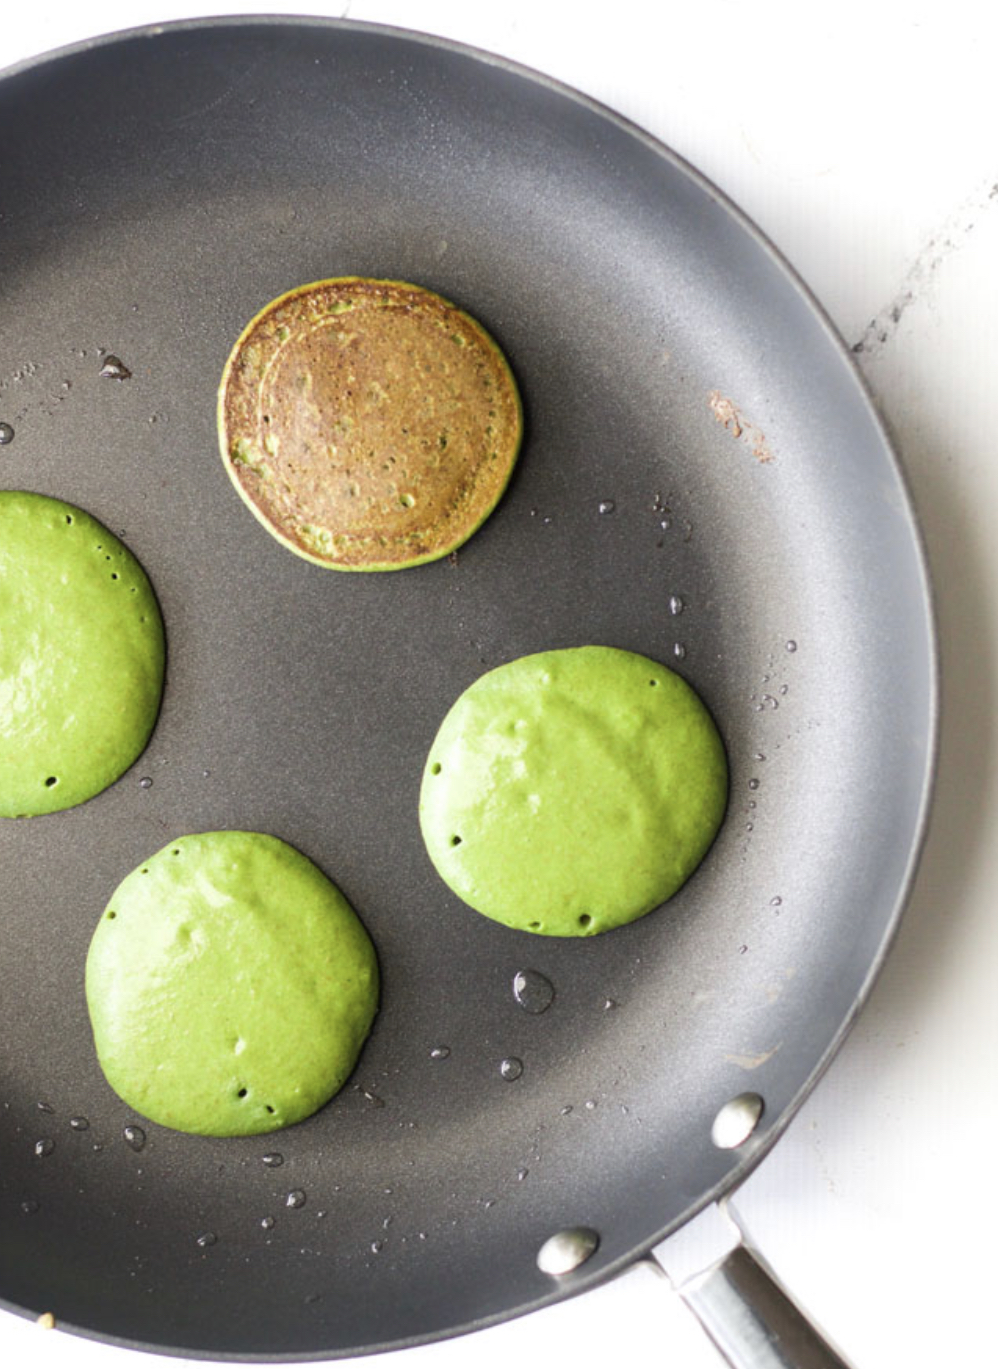 healthy eating, green smoothie pancakes, healthy pregnancy, healthy pregnancy snacks, pregnancy eating, pancakes, food ideas for toddlers, healthy snacks, food for toddlers, breakfast ideas, mom blogger, mommy blog, mommy blogger